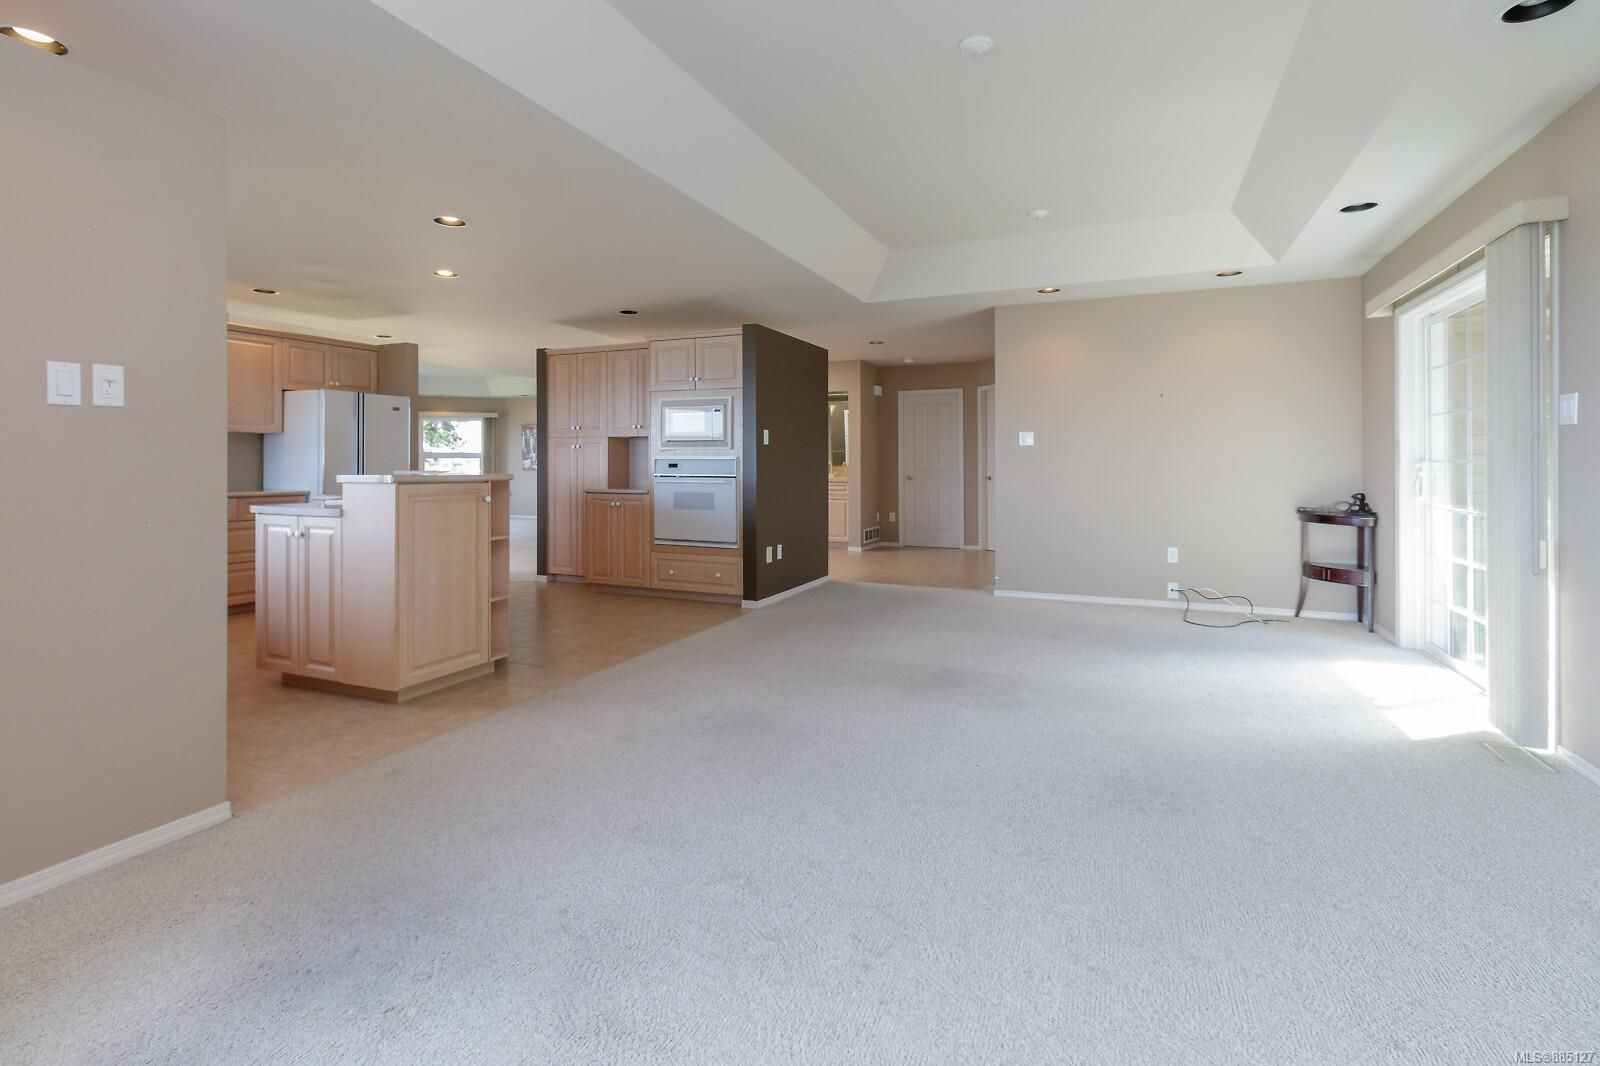 Photo 21: Photos: 26 529 Johnstone Rd in : PQ French Creek Row/Townhouse for sale (Parksville/Qualicum)  : MLS®# 885127